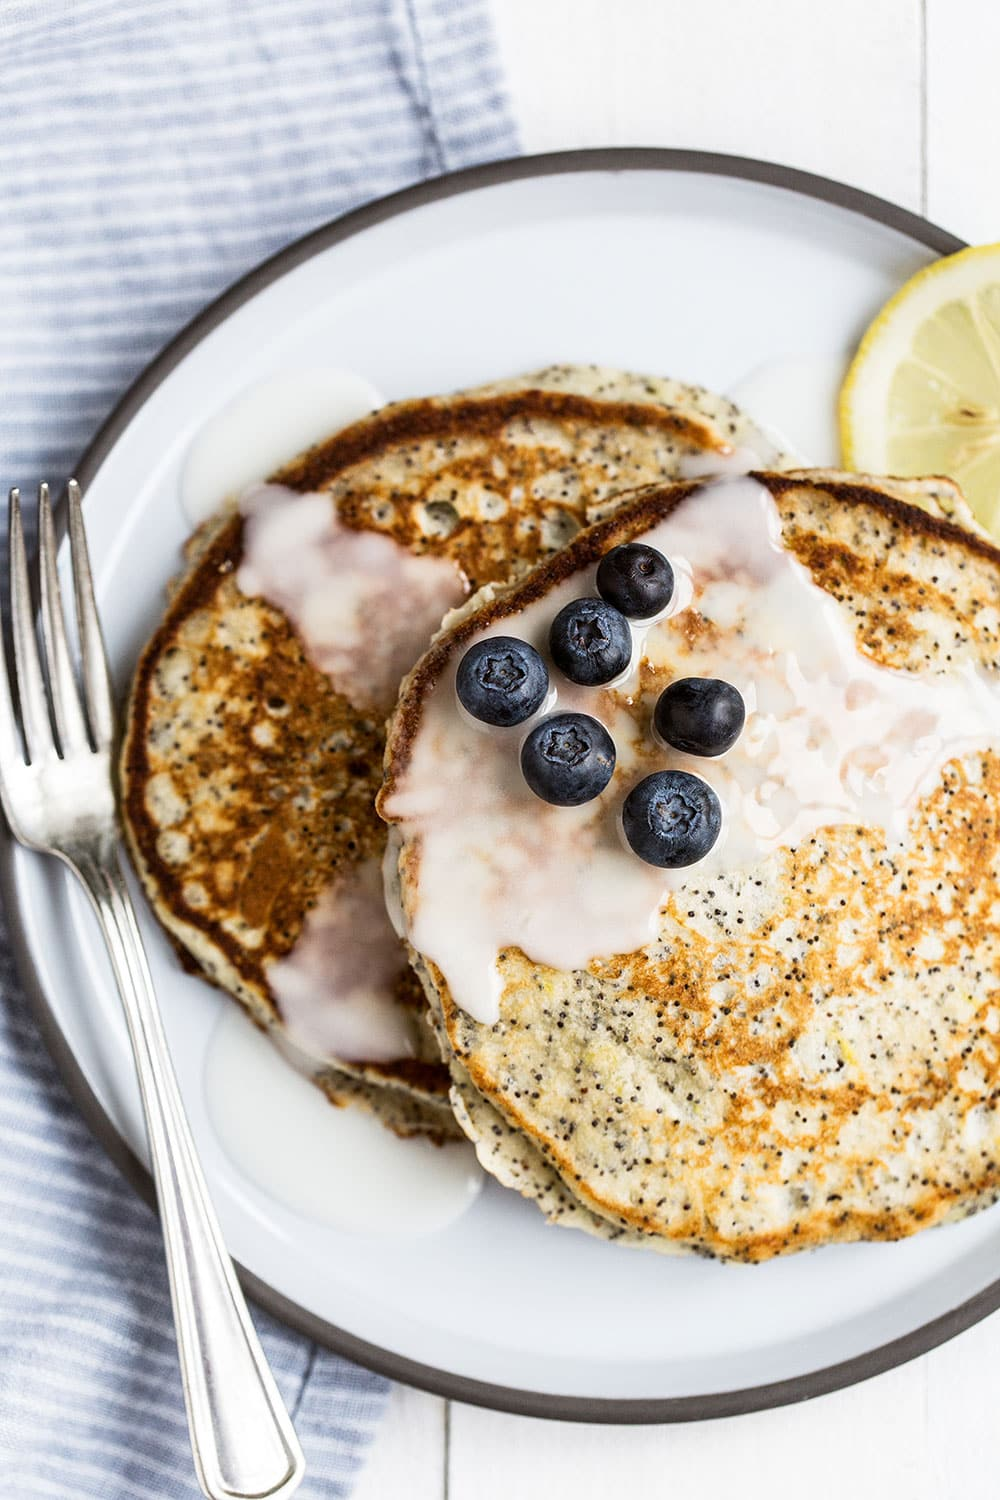 Lemon Poppy Seed pancakes with a sweet lemon glaze can be made ahead of time and are so flavorful and fluffy!